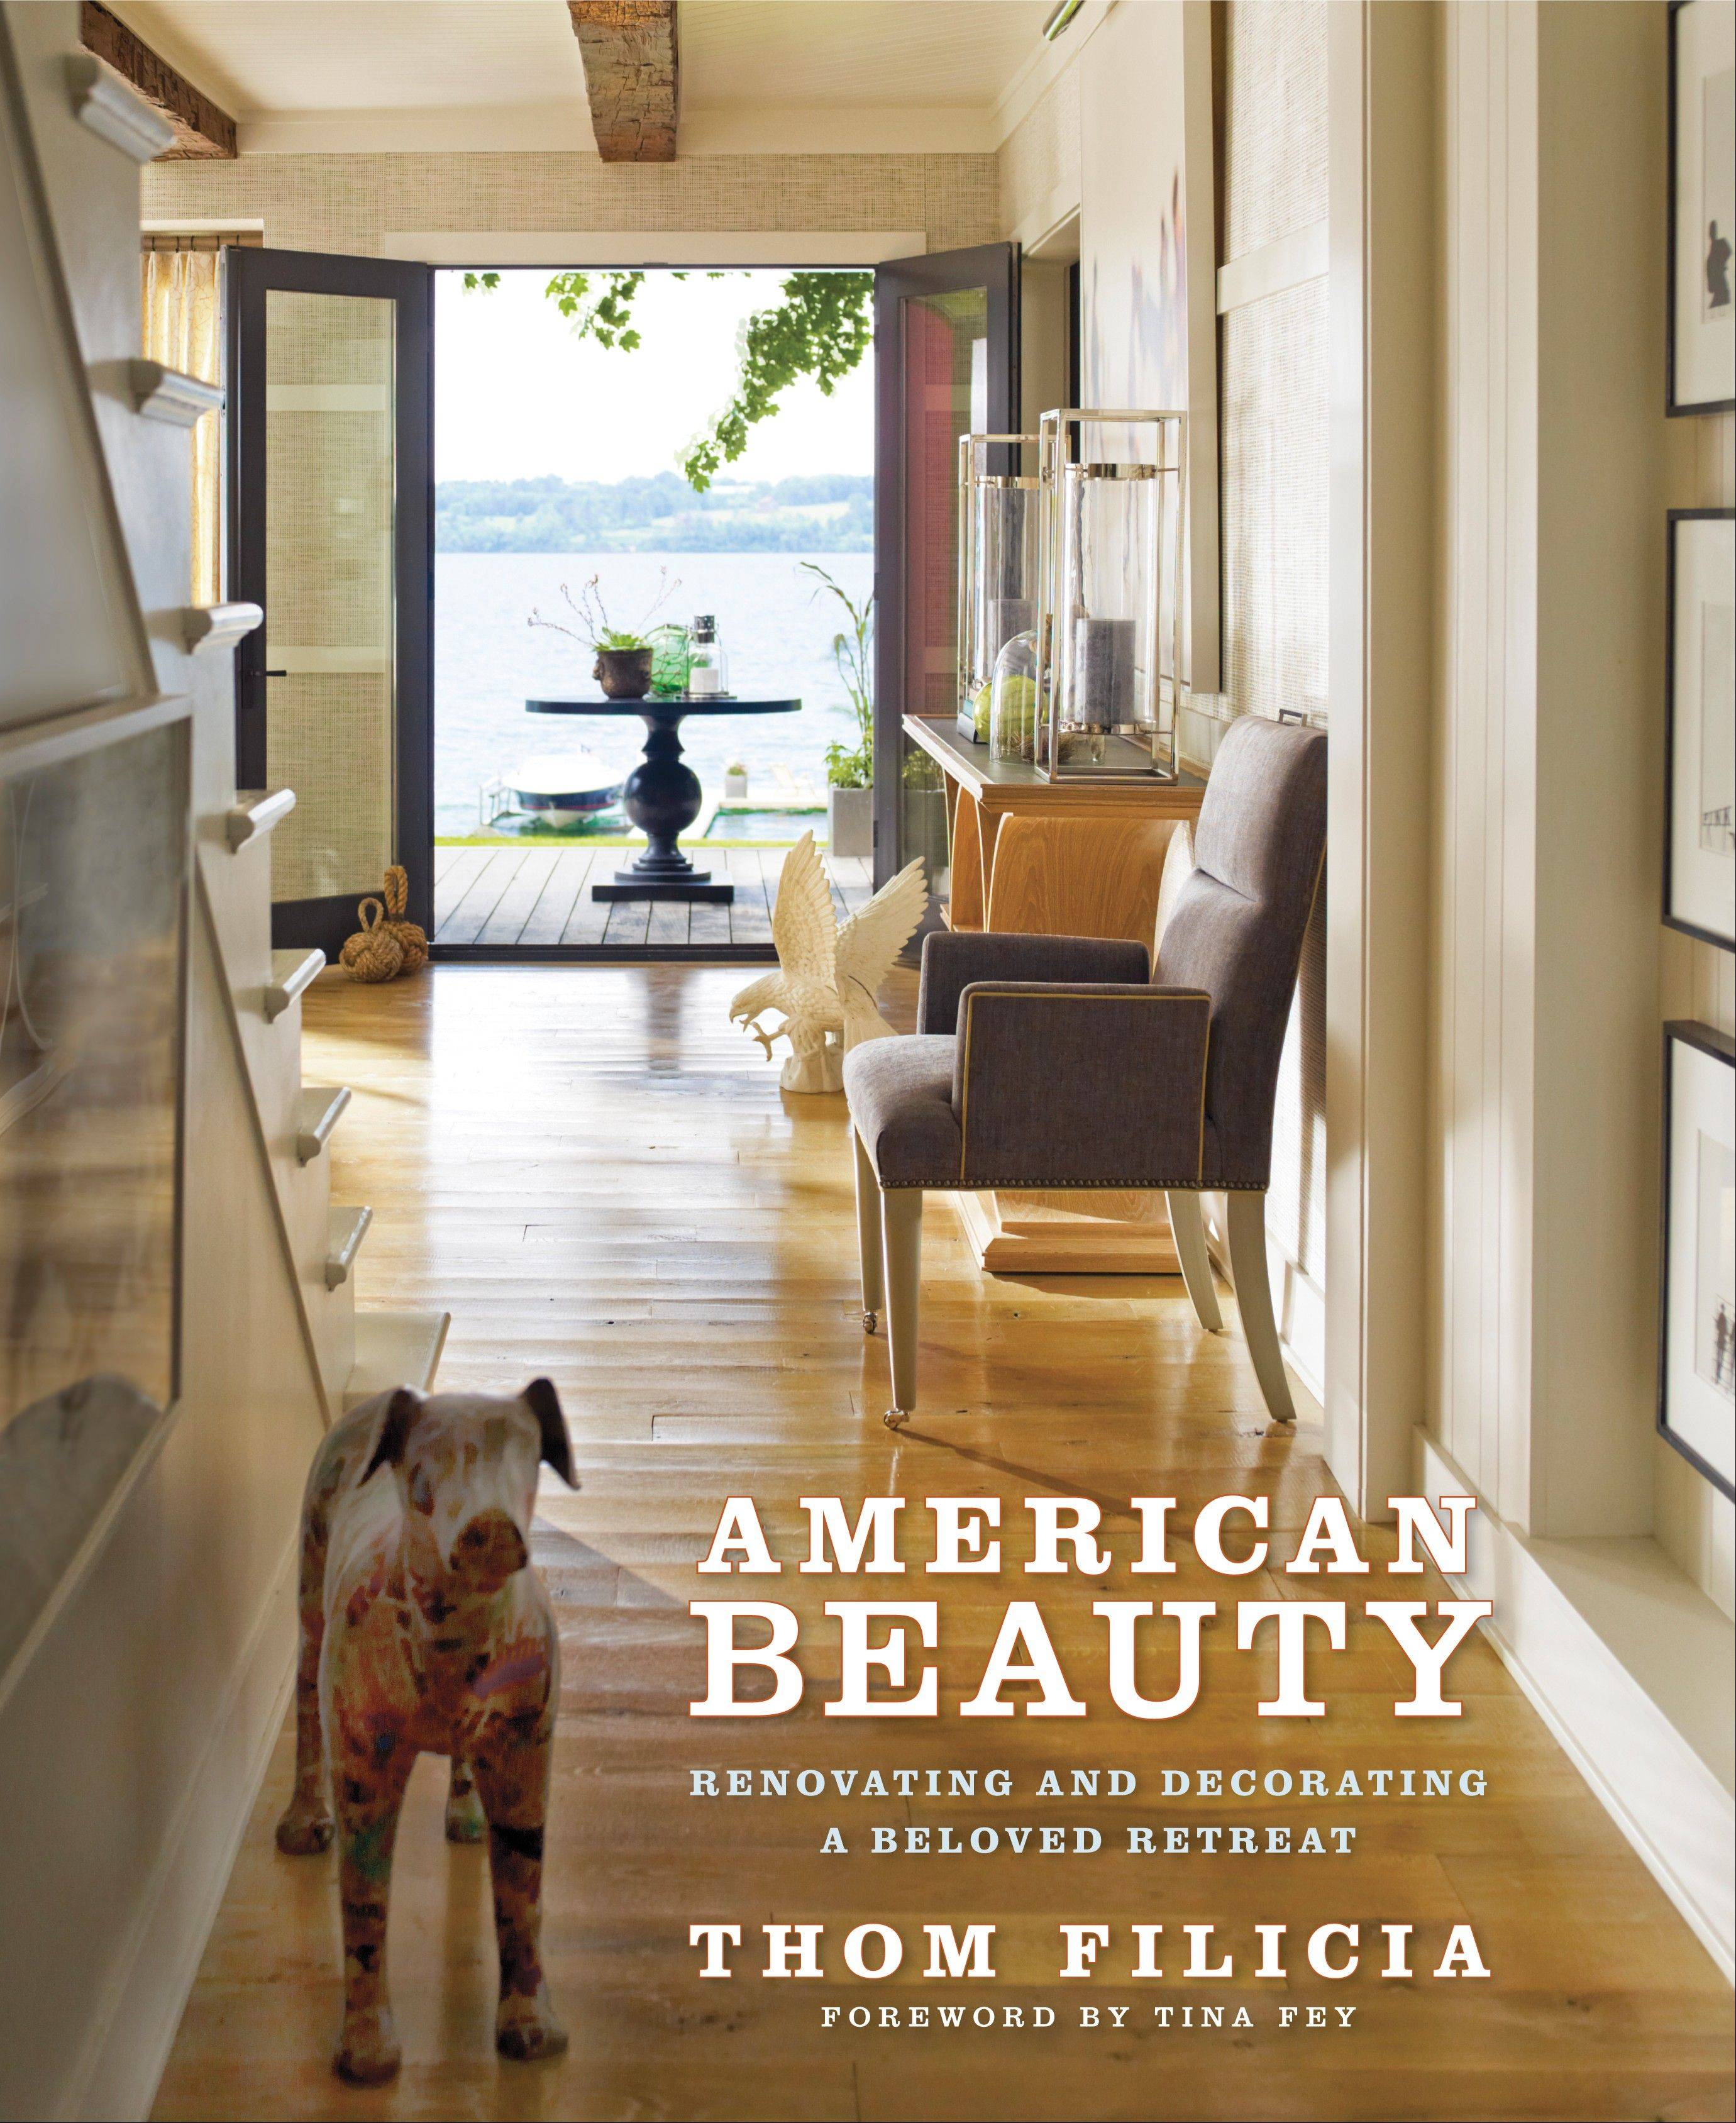 Thom Filicia's latest book is published by Clarkson/Potter.